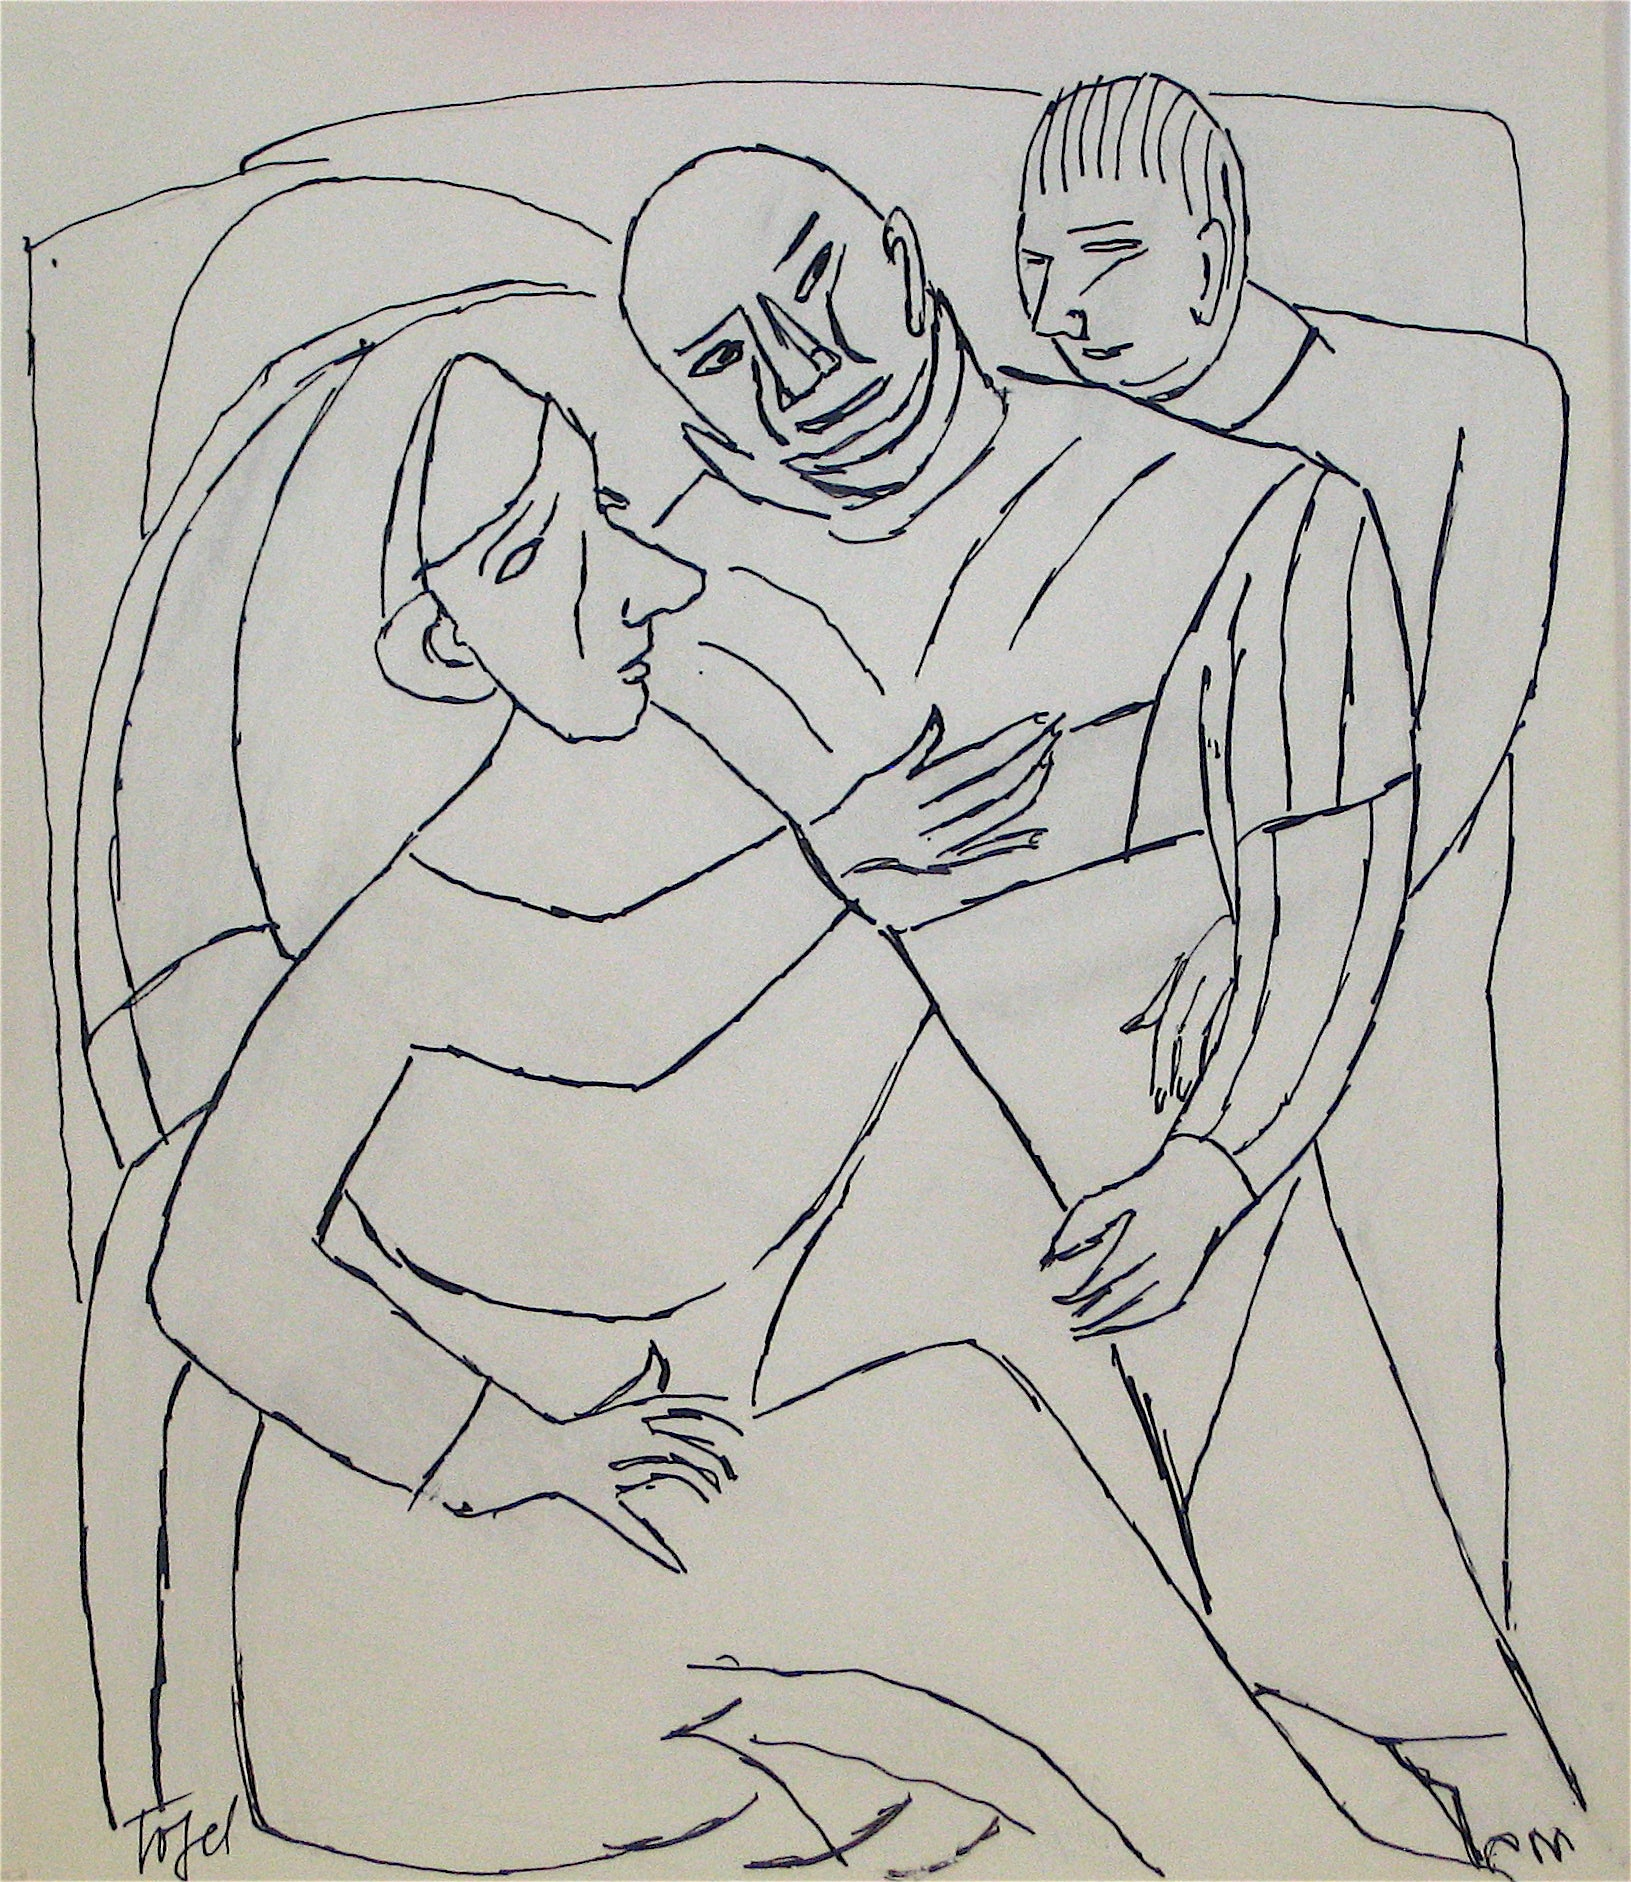 Abstracted Figures with Monk and Nun <br>Early 20th Century Ink on Paper <br><br>#11197